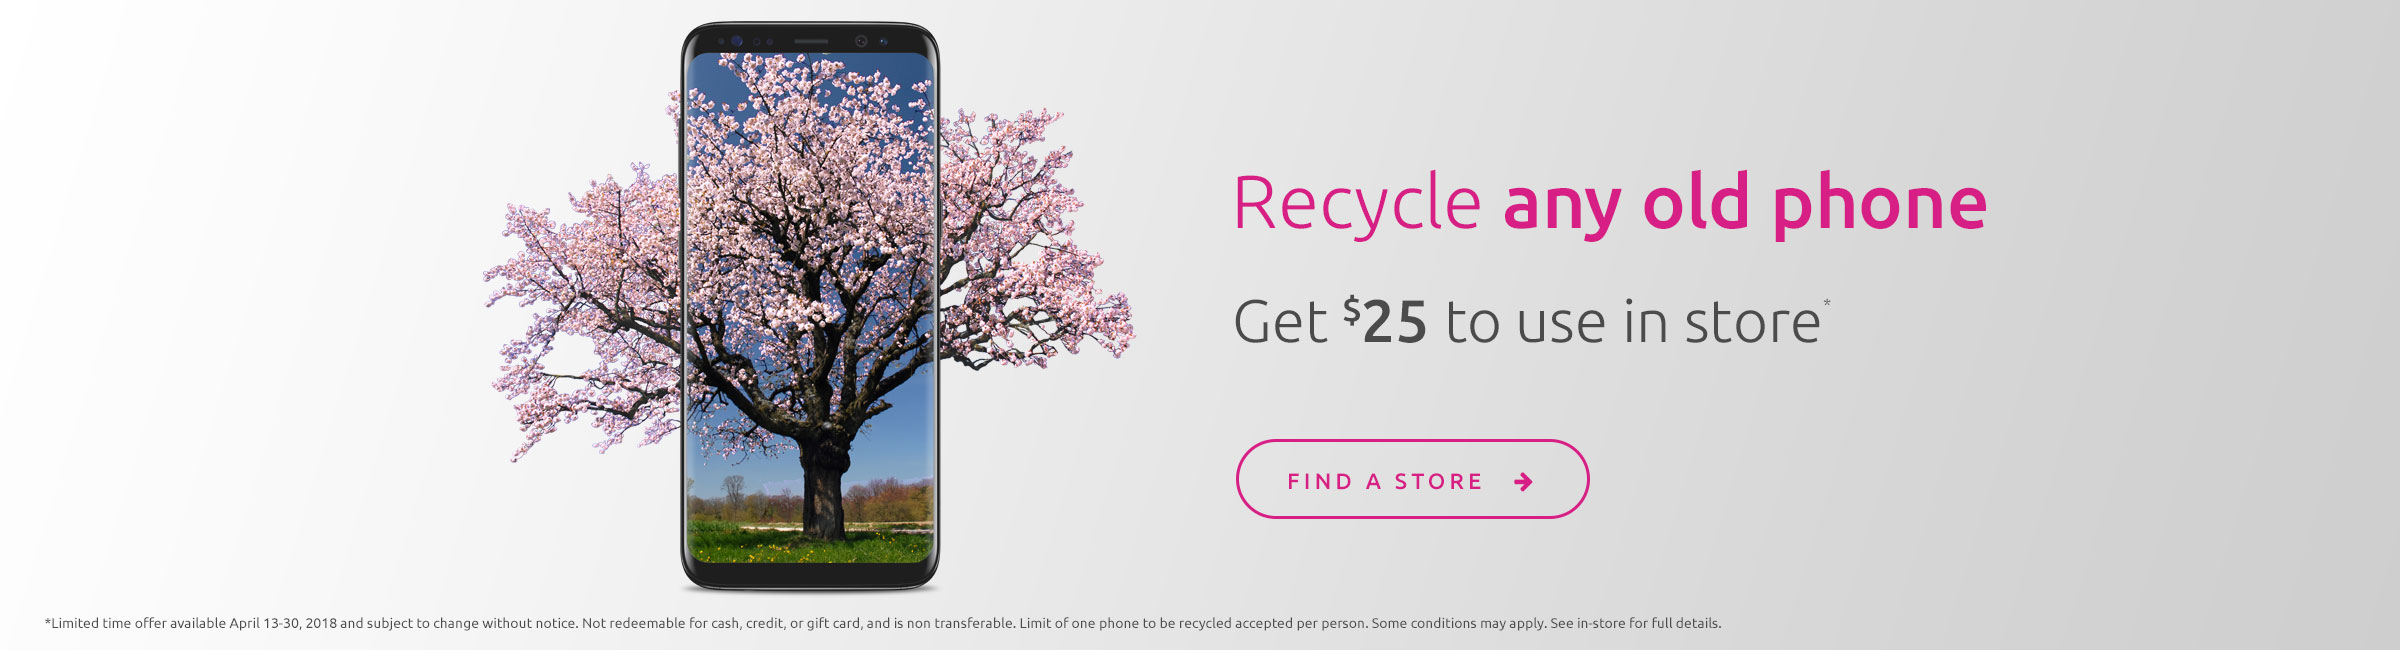 Recycle any old phone - get $25 to use in-store